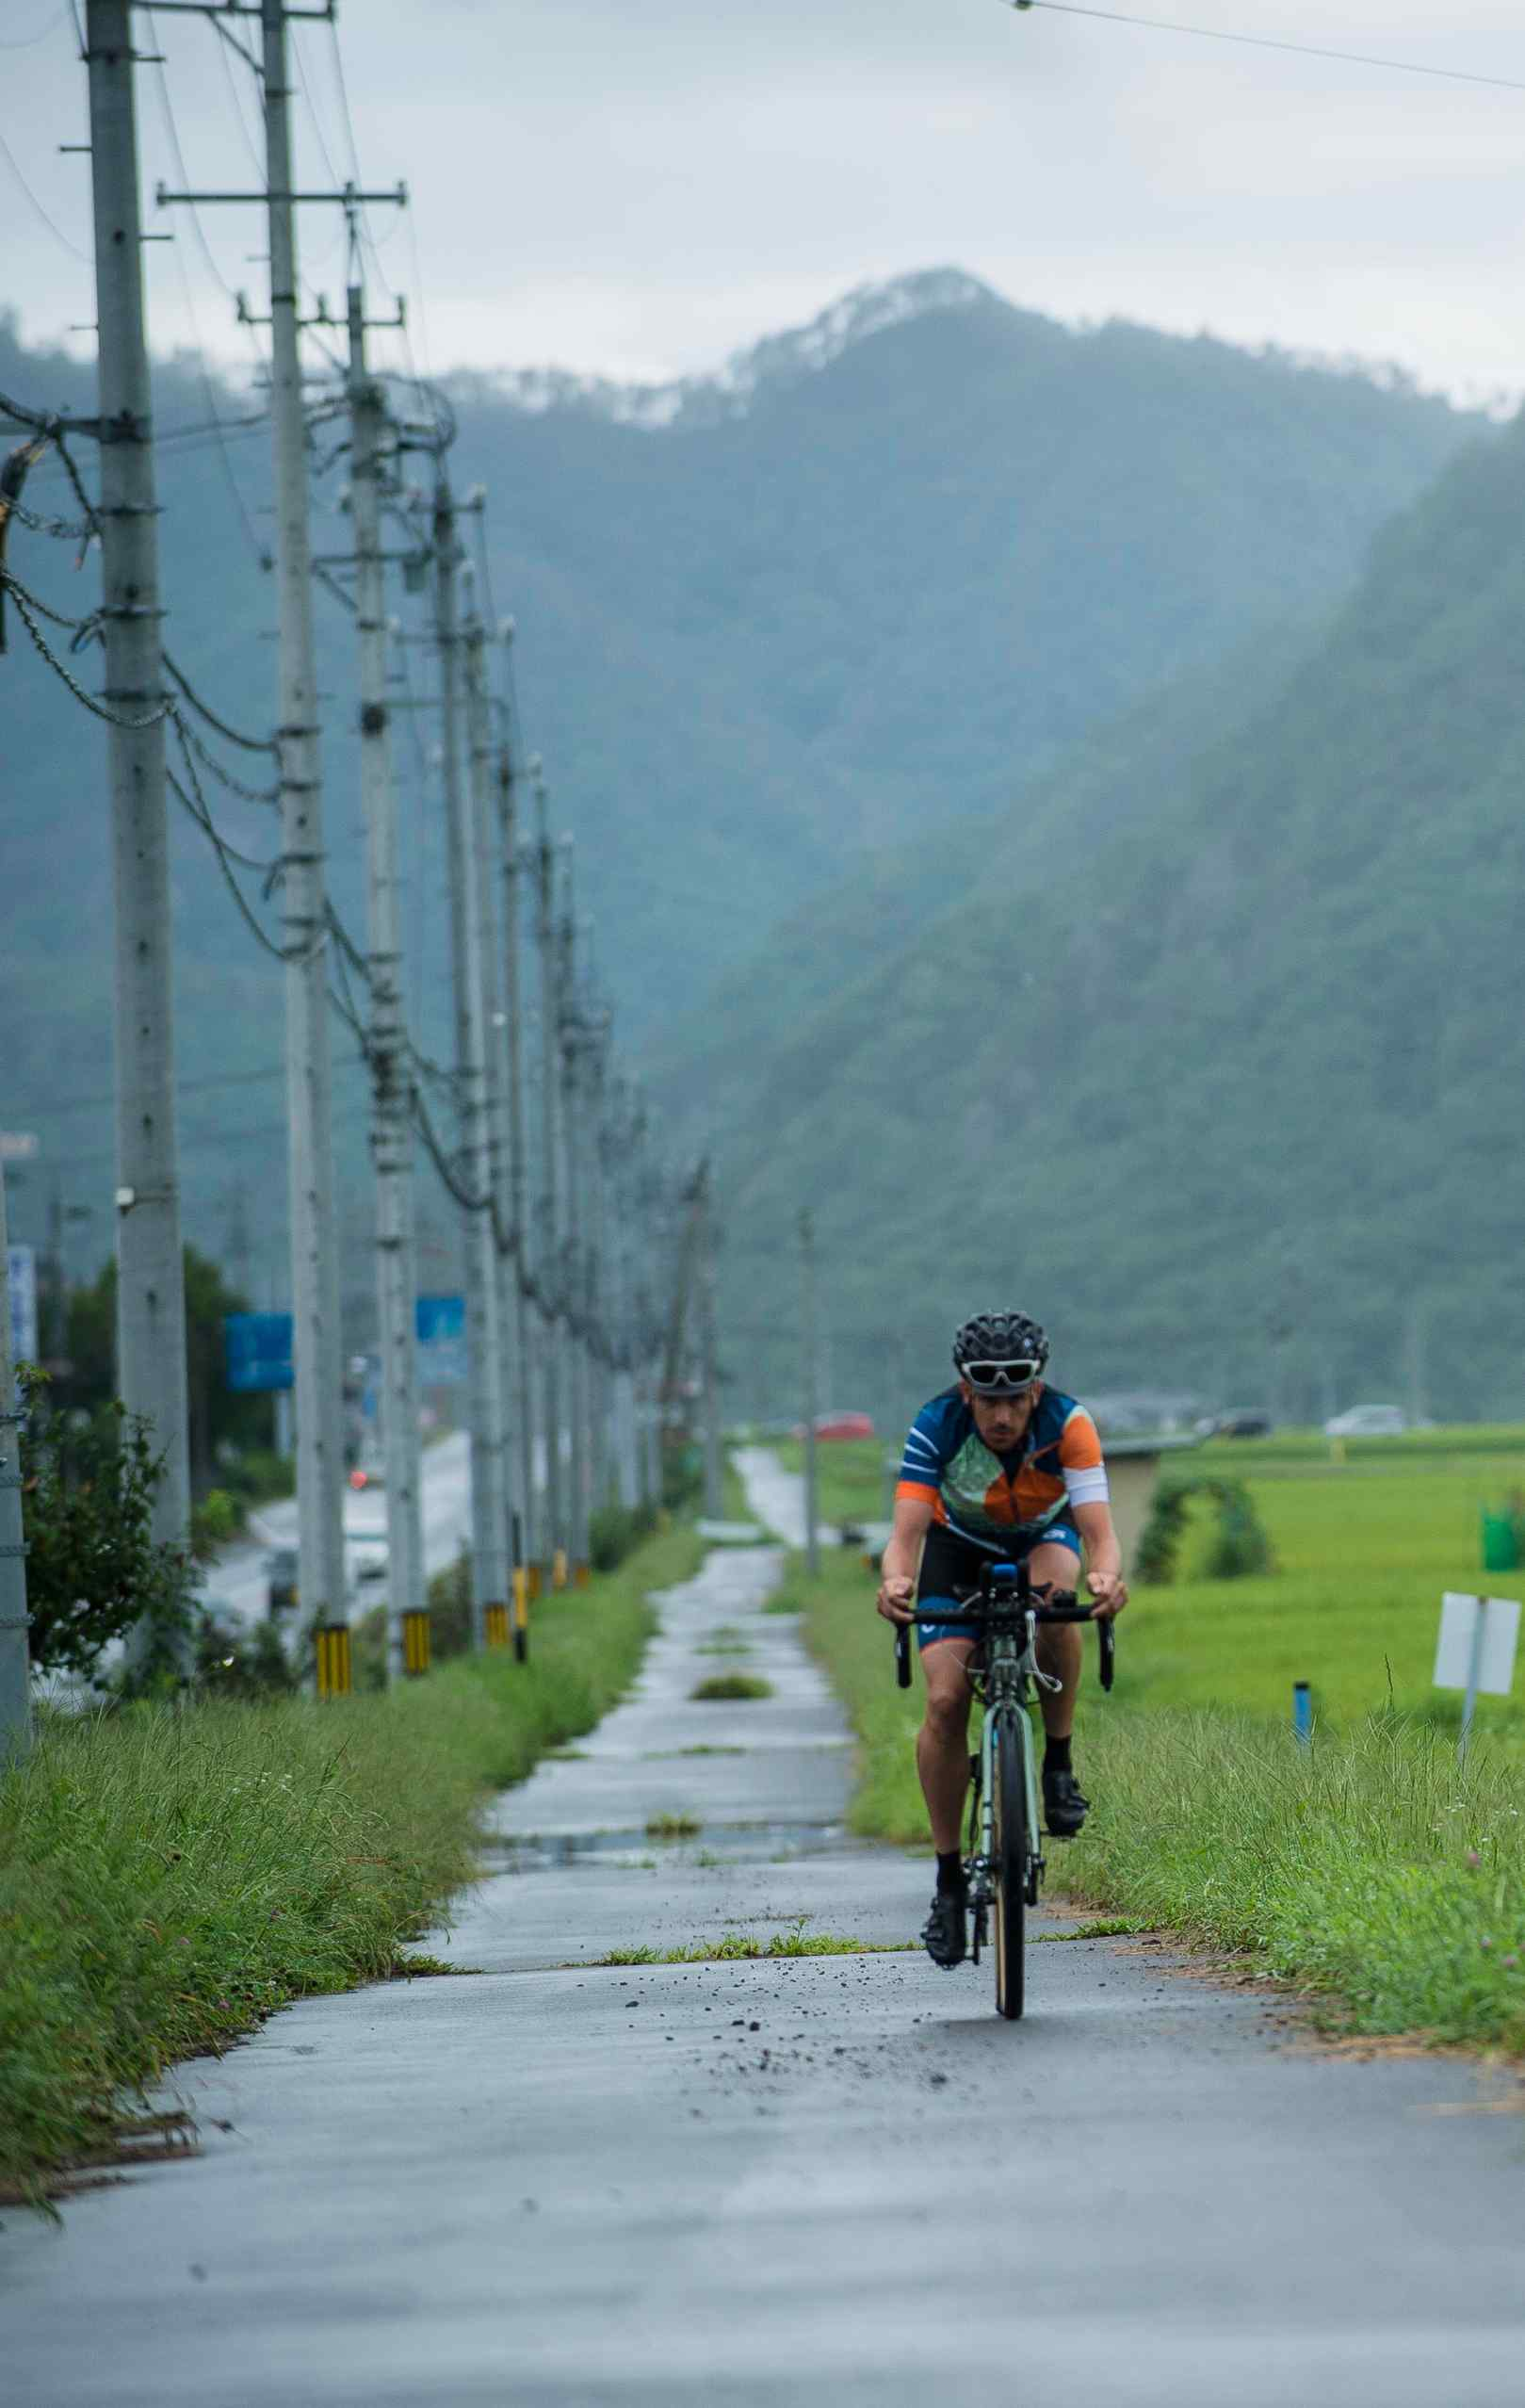 A cyclist riding in the Japanese Odyssey